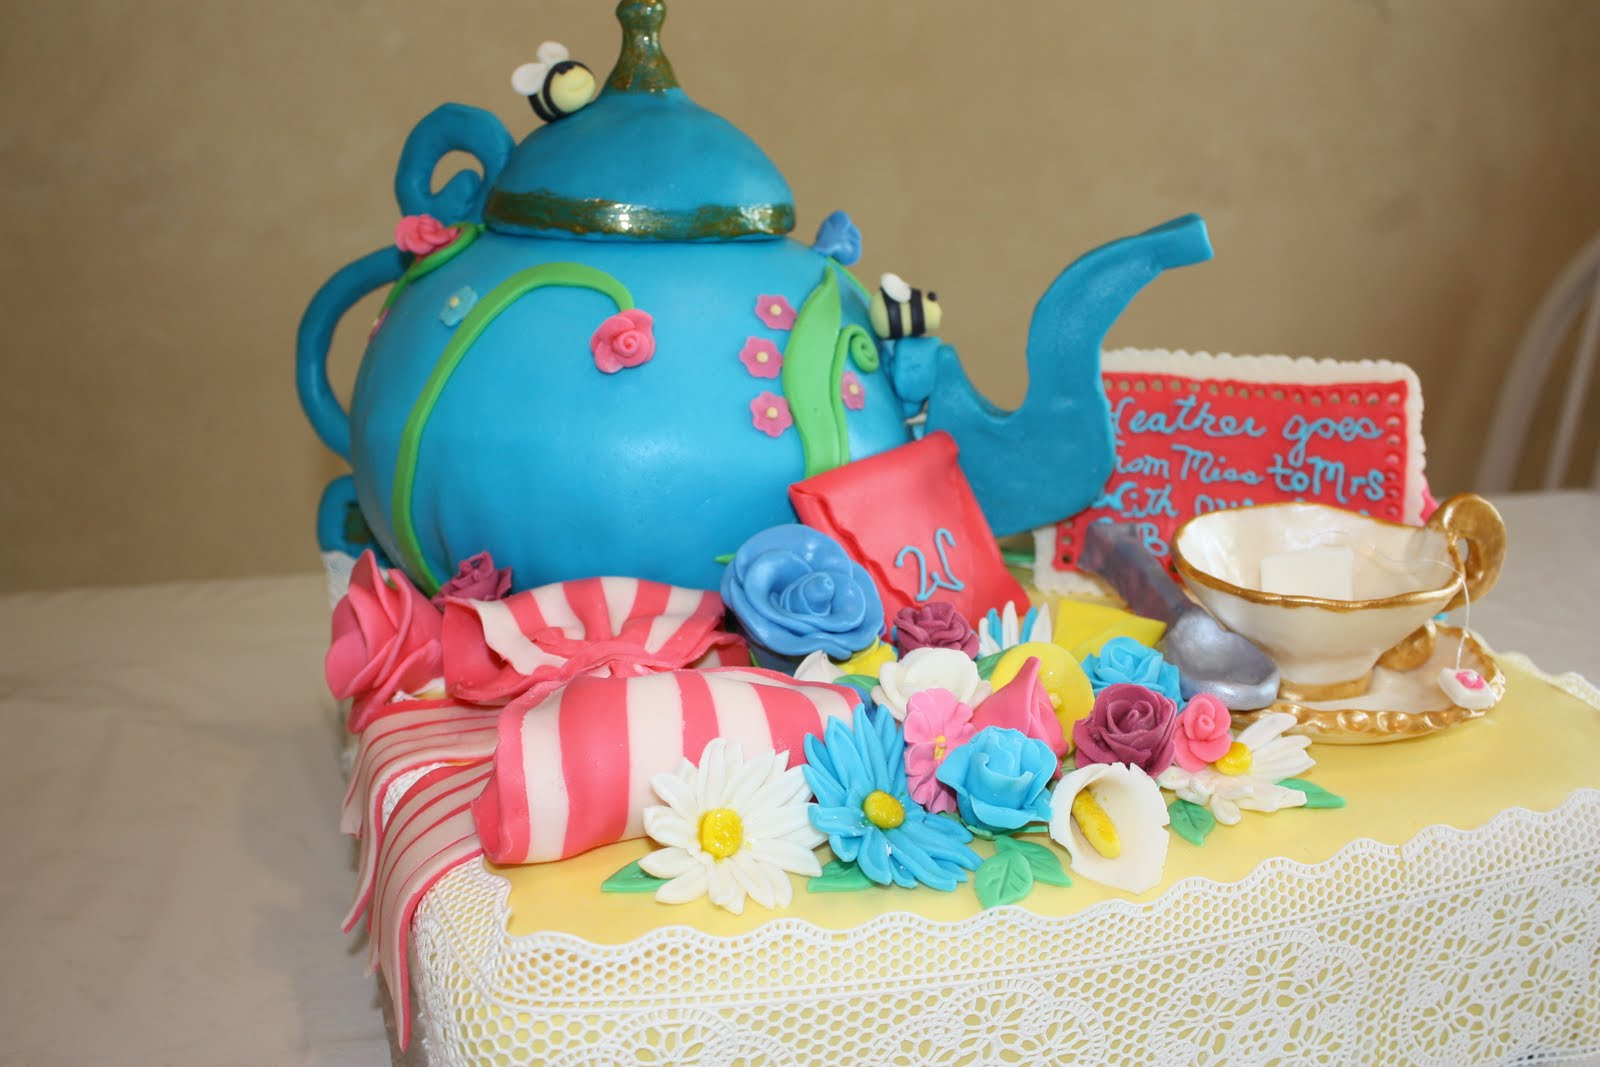 Cake Decorations For Birthday Party : Tea Party Cakes   Decoration Ideas Little Birthday Cakes